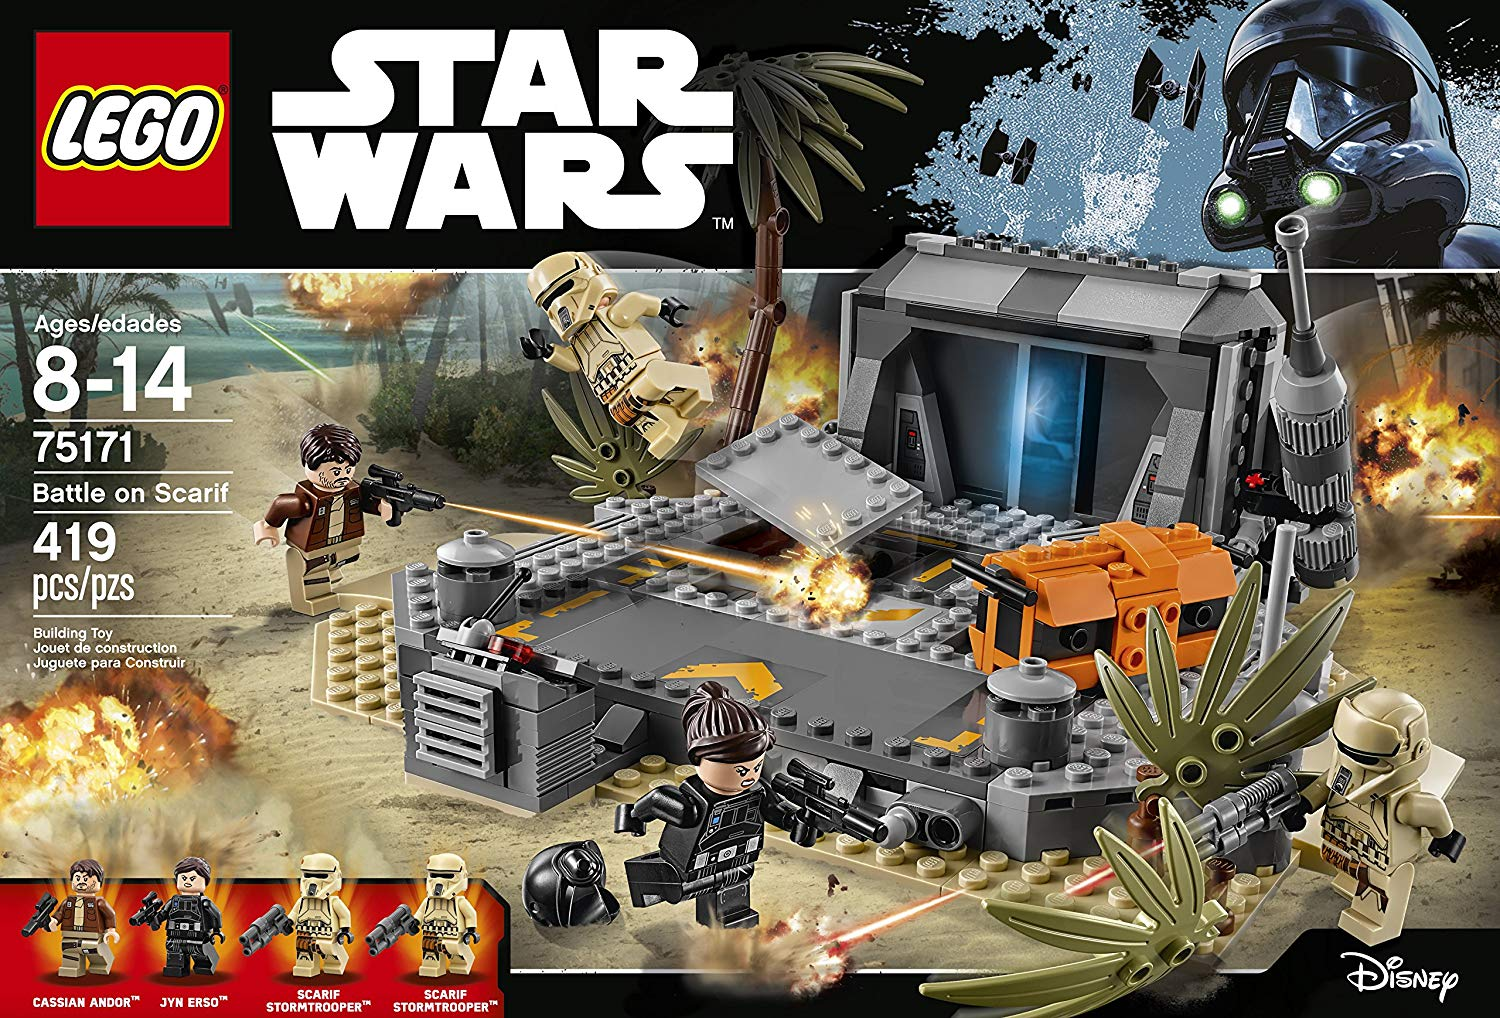 LEGO Star Wars 75171 Battle on Scarif set